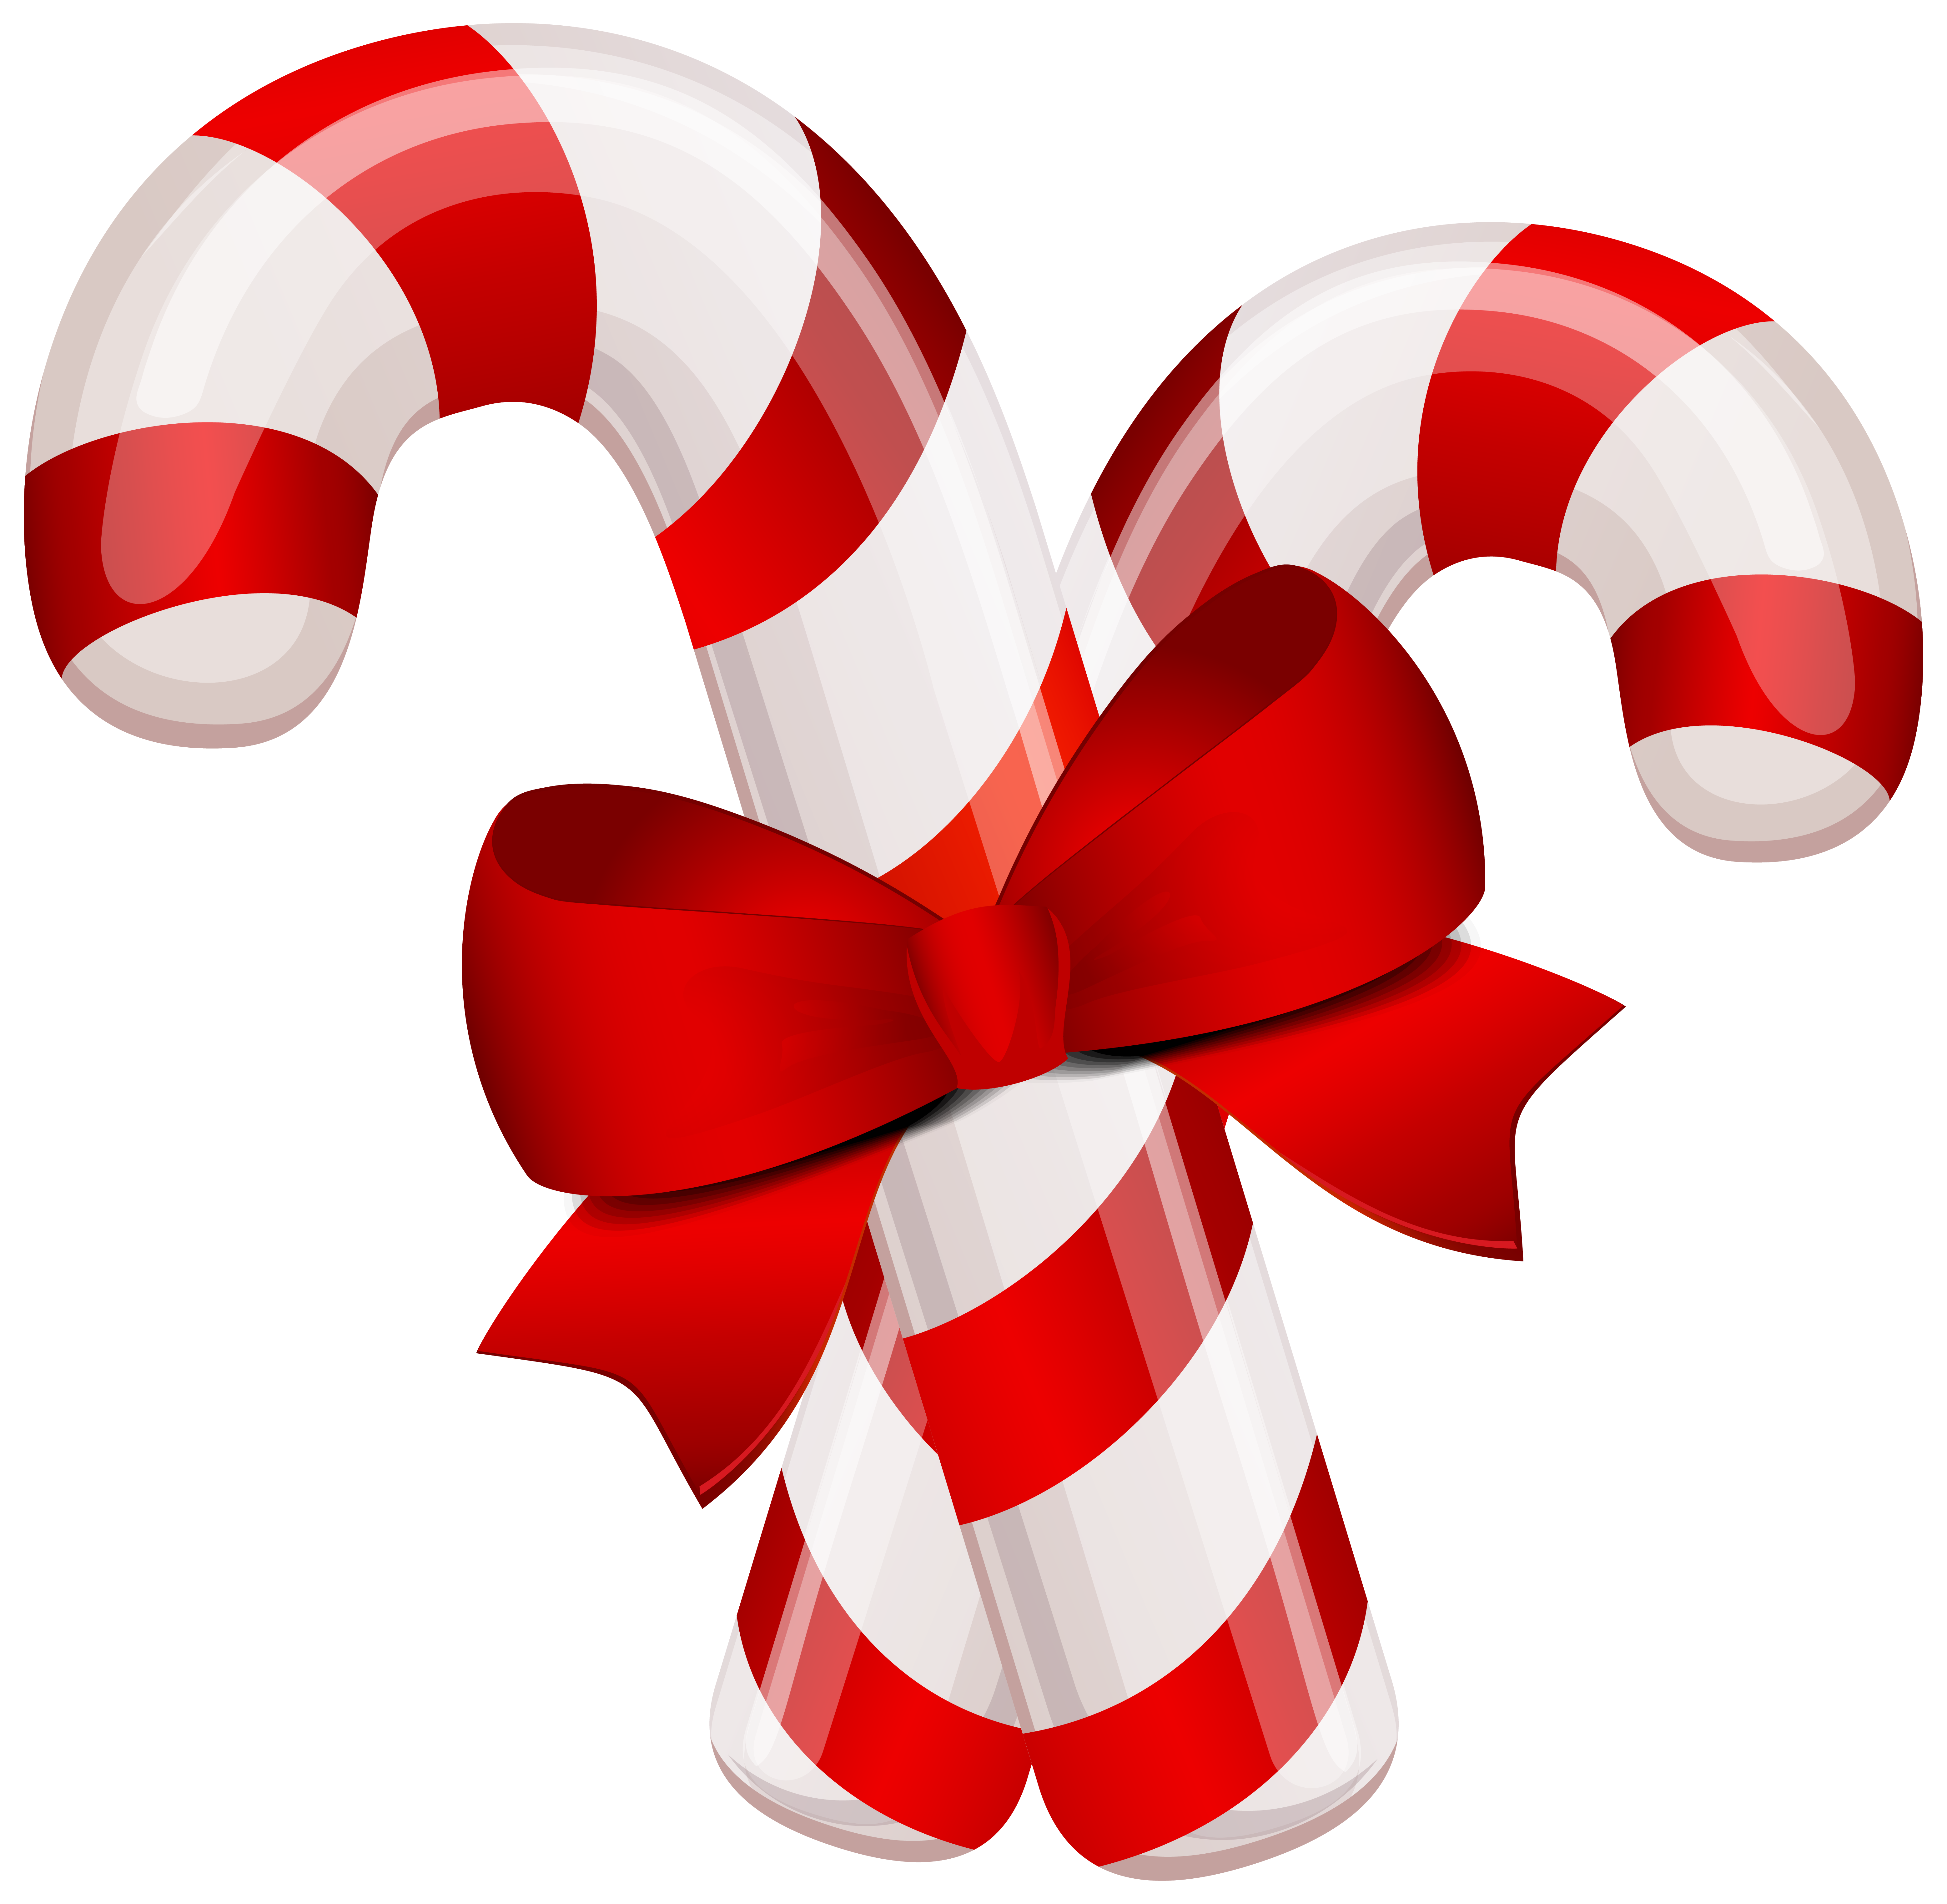 Christmas candy cane clipart vector freeuse download Christmas Classic Candy Canes PNG Clipart Image | Gallery ... vector freeuse download